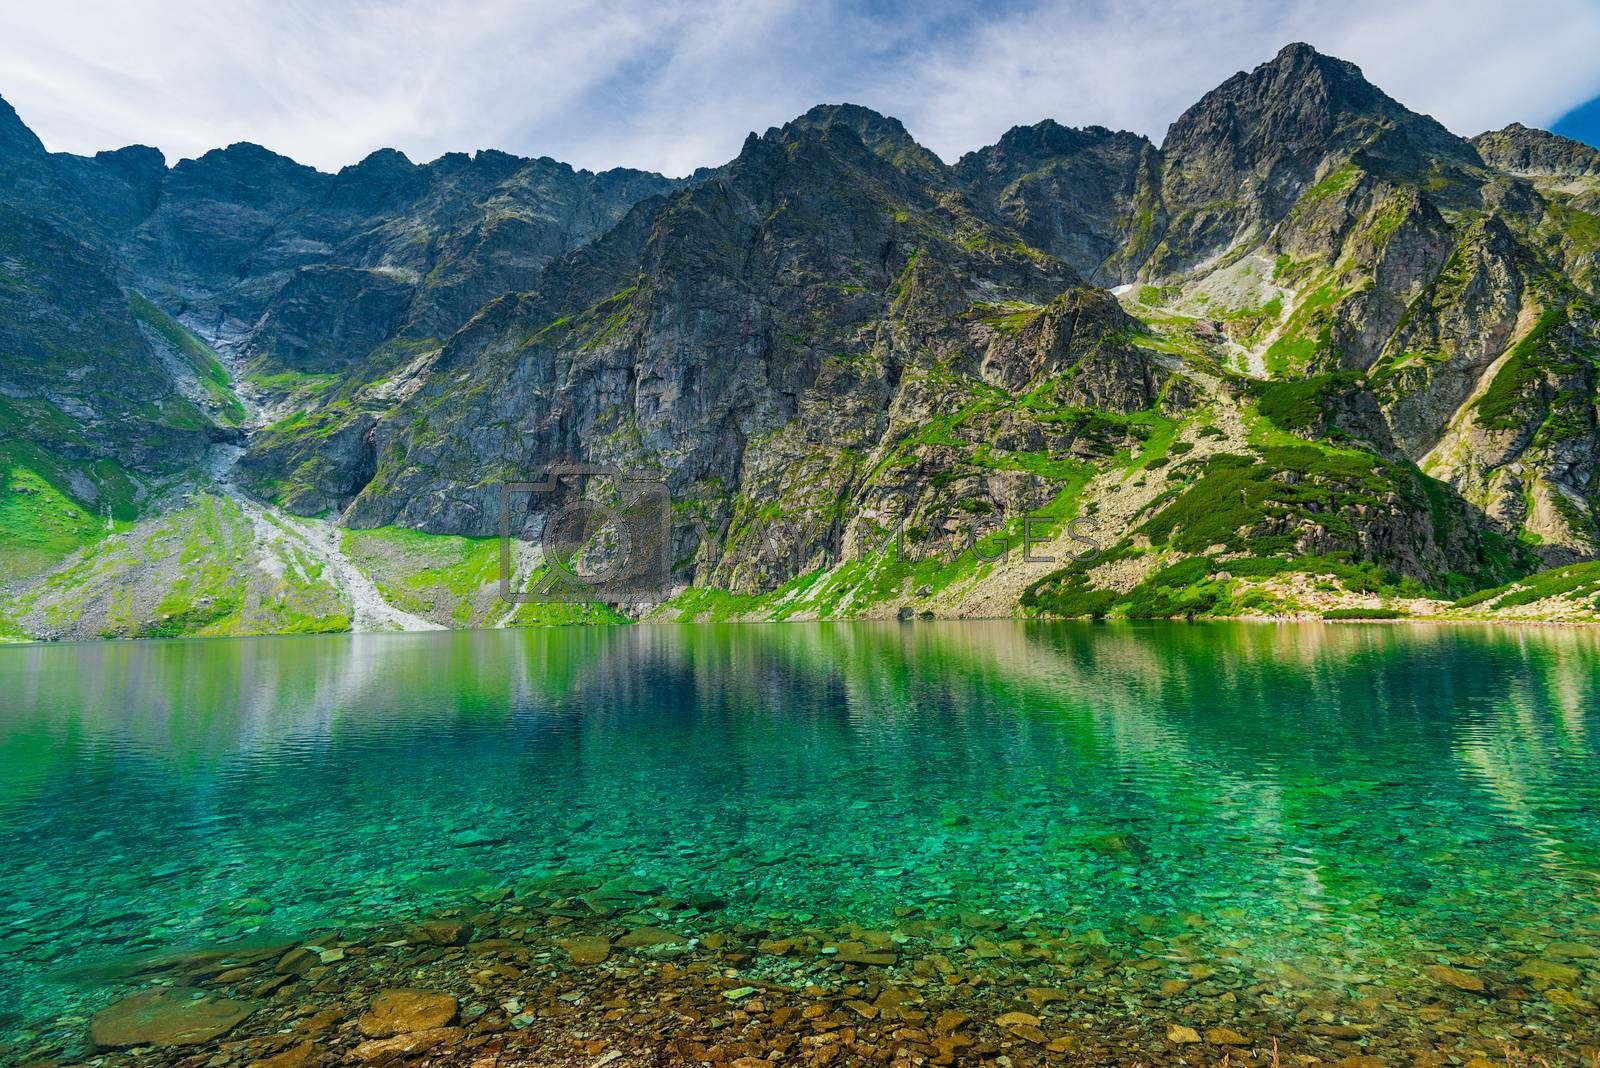 background - scenic landscape of a mountain and a lake in the Ta by kosmsos111